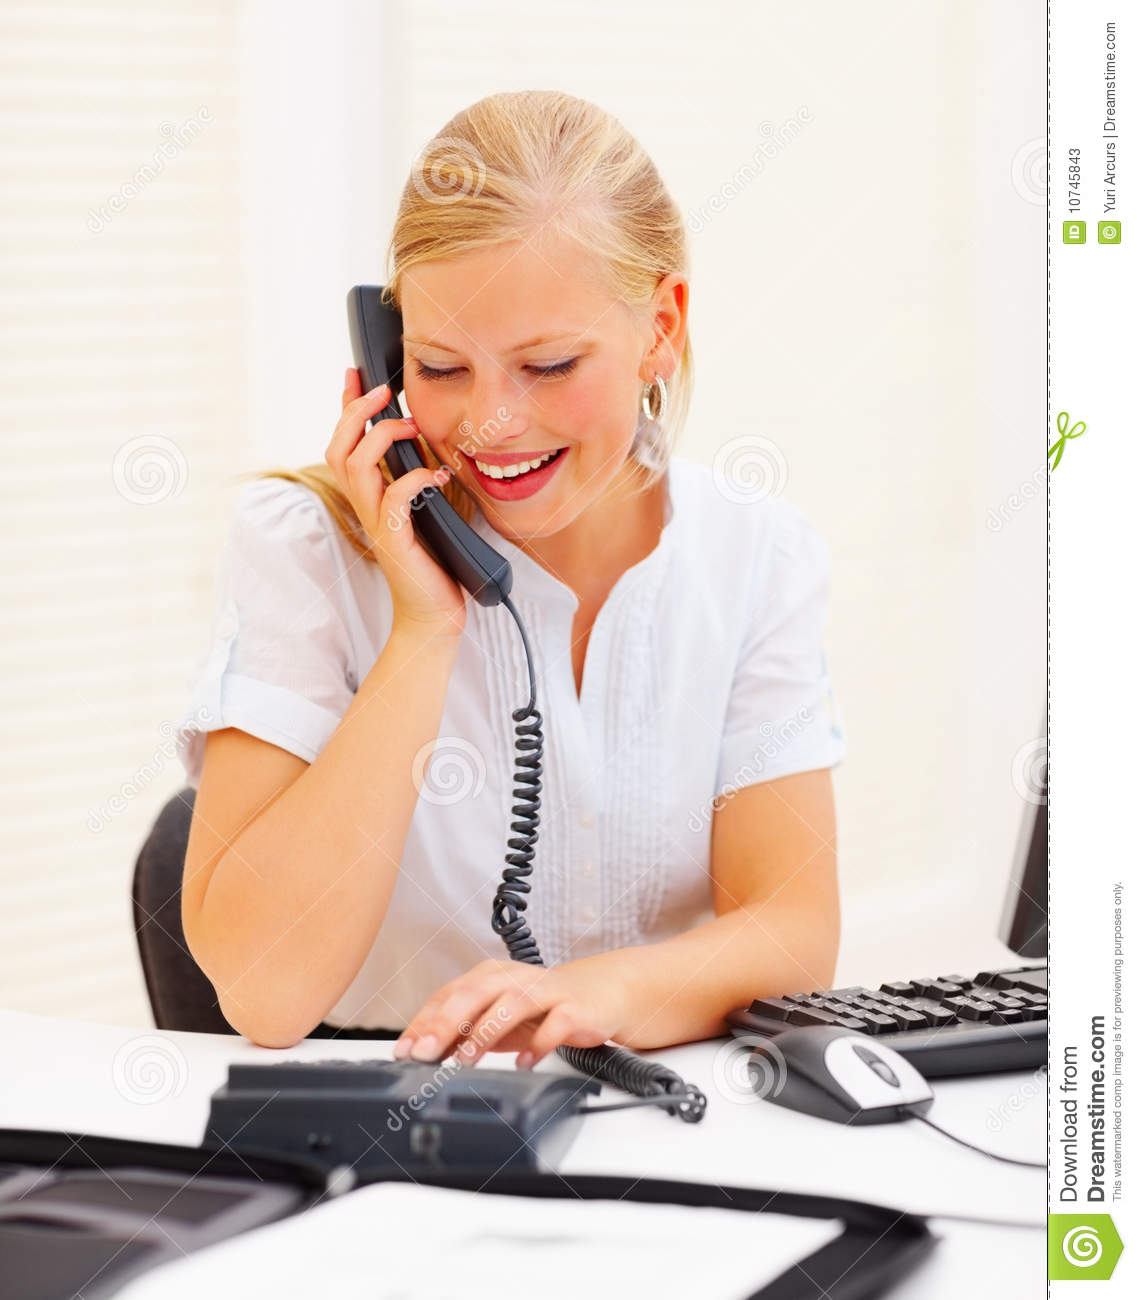 Stock Photos: Secretary using a telephone in office. Image: 10745843